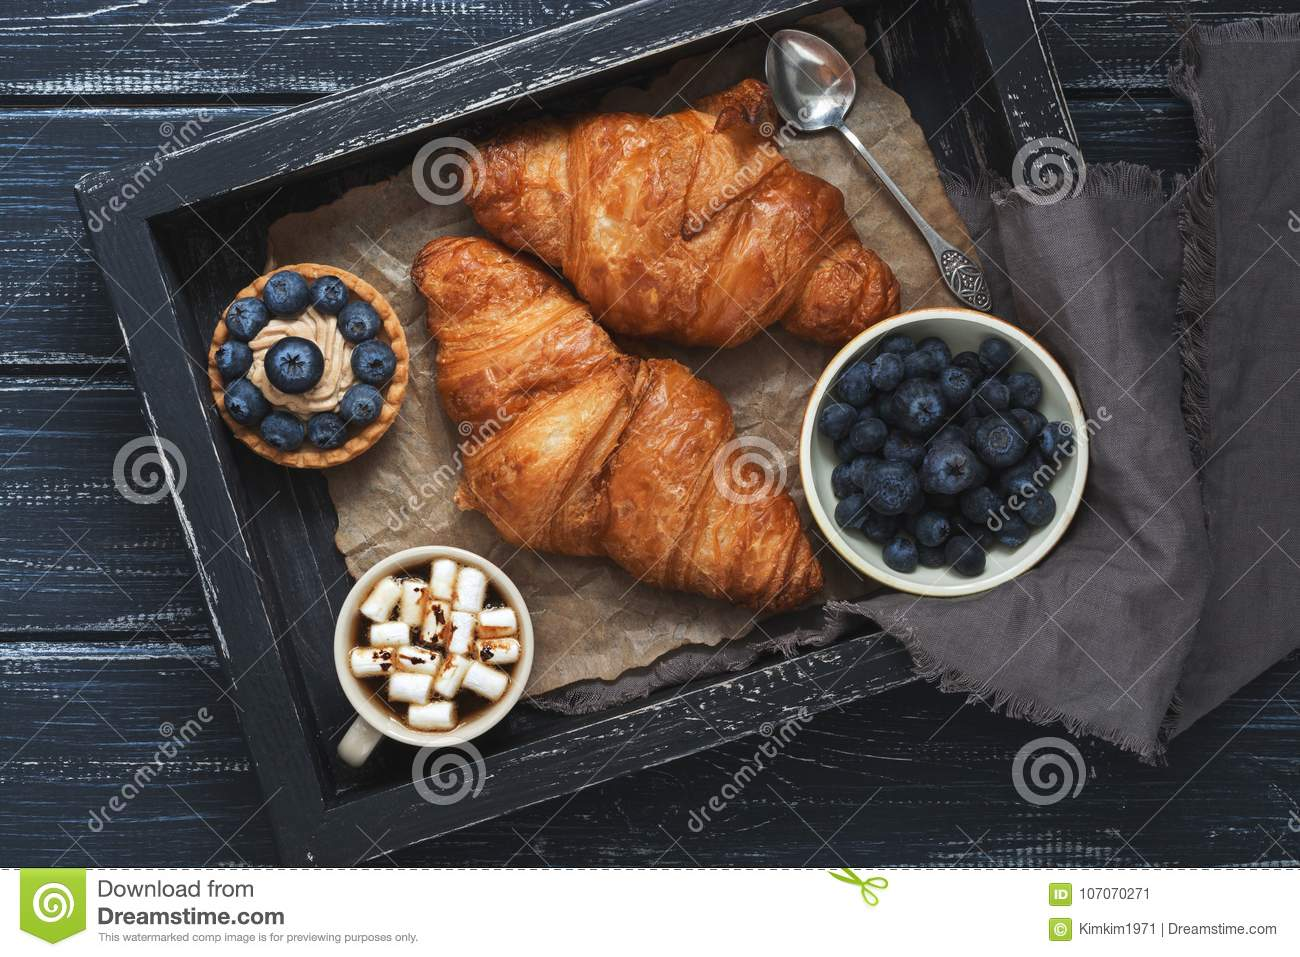 Croissants, cake with blueberries, coffee with marshmallows on a wooden tray with a napkin. Wooden dark background, top view.